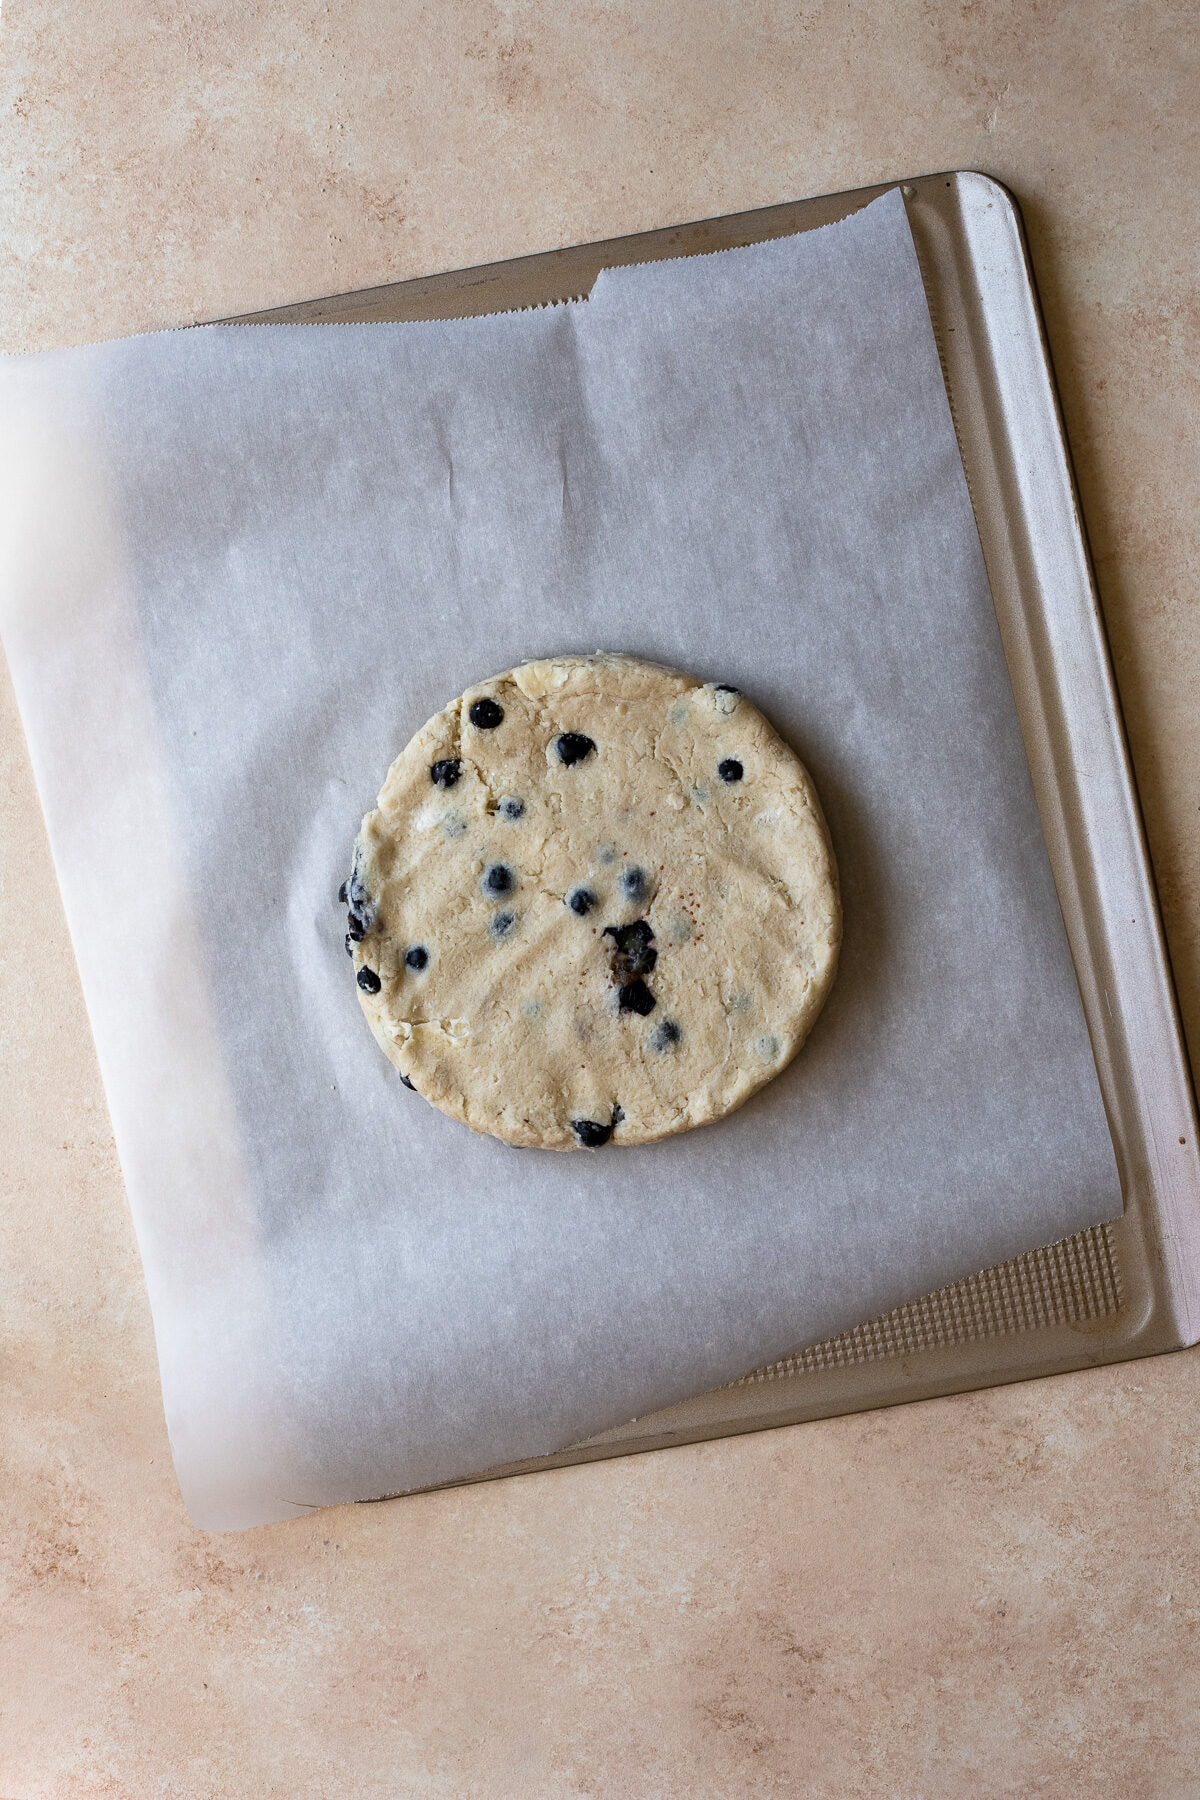 Scone dough flattened into a disc on a parchment-lined baking sheet.